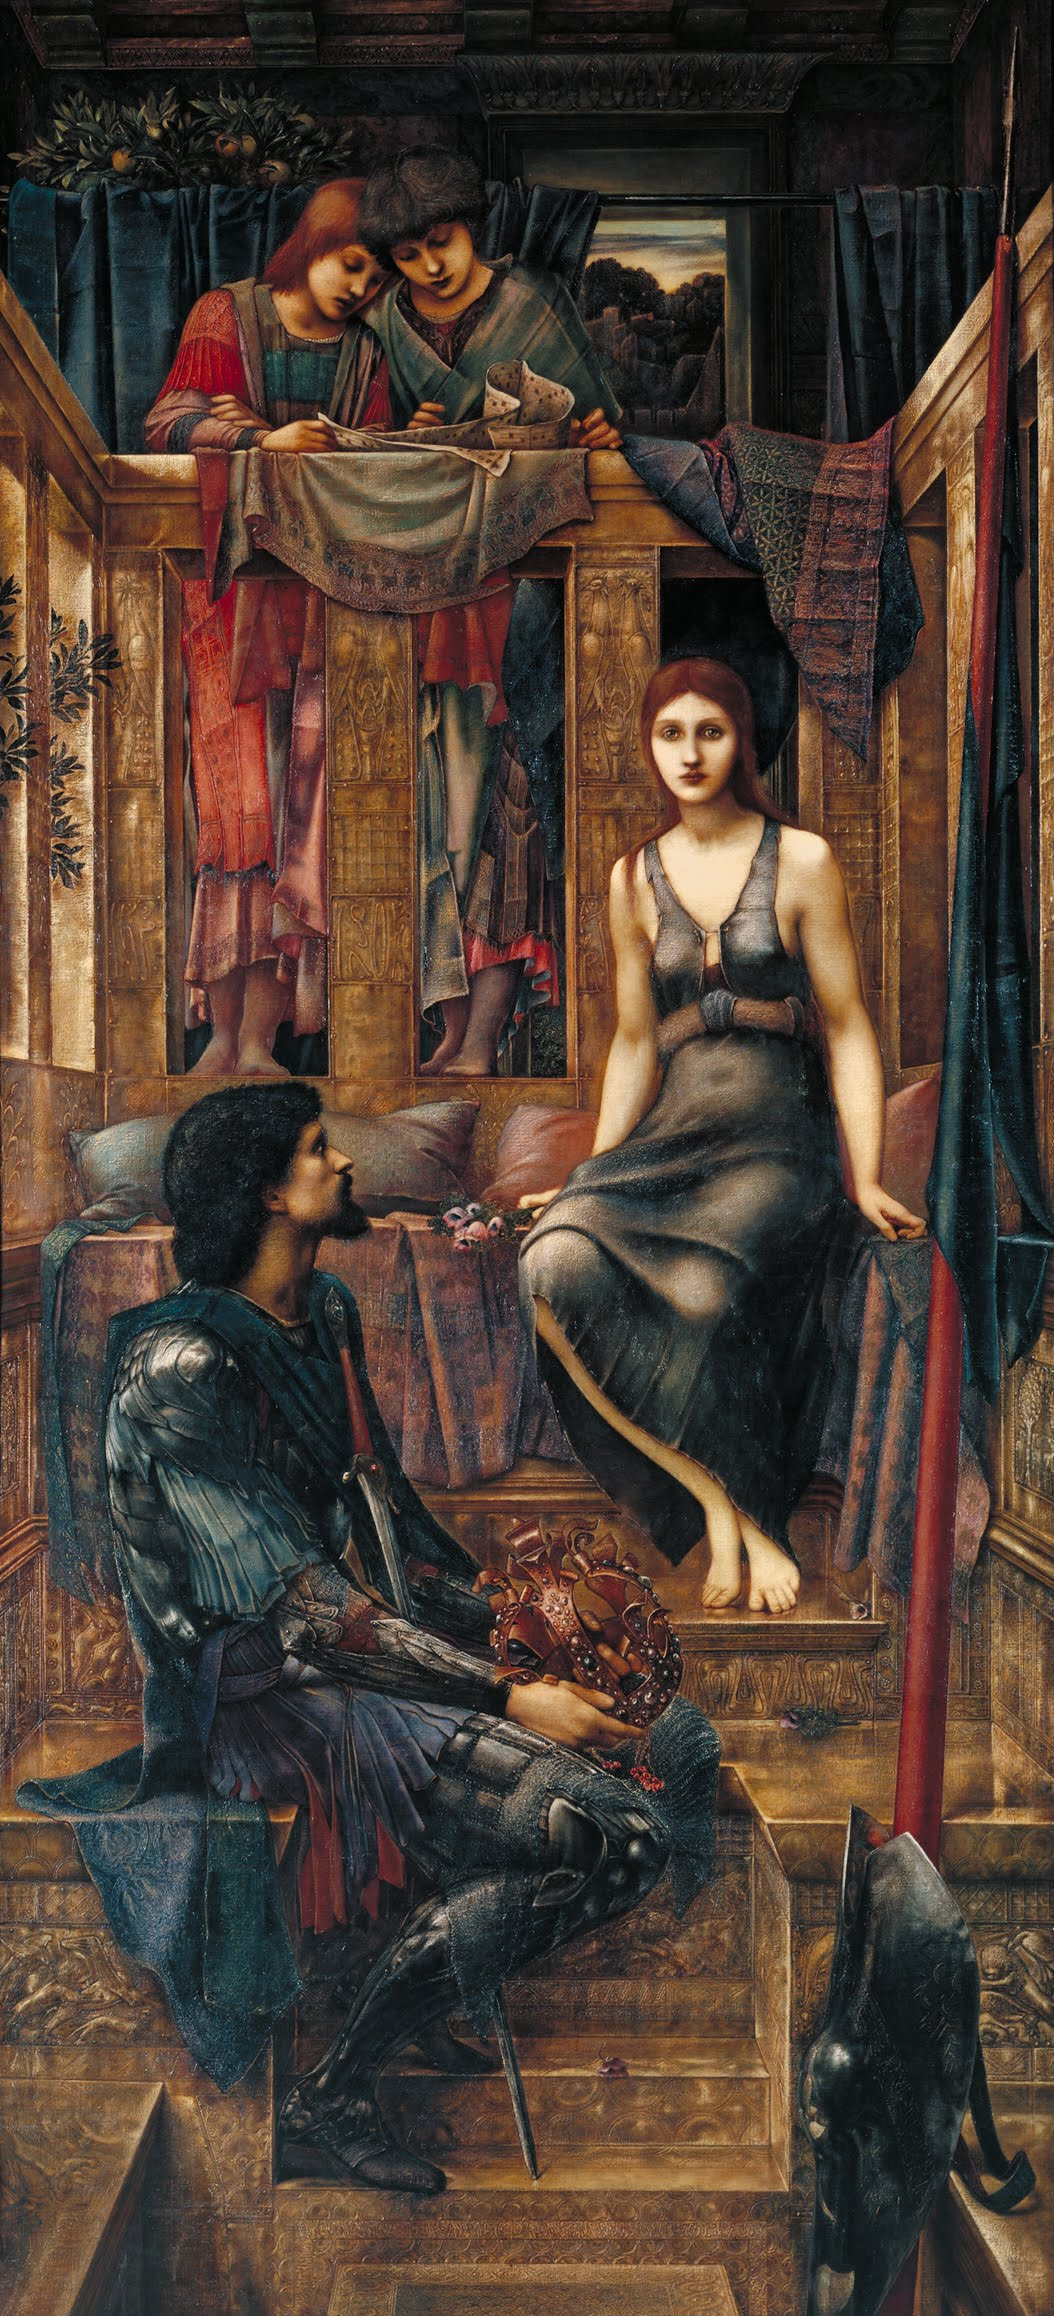 'King Cophetua and the Beggar Maid,' by Edward Burne-Jones